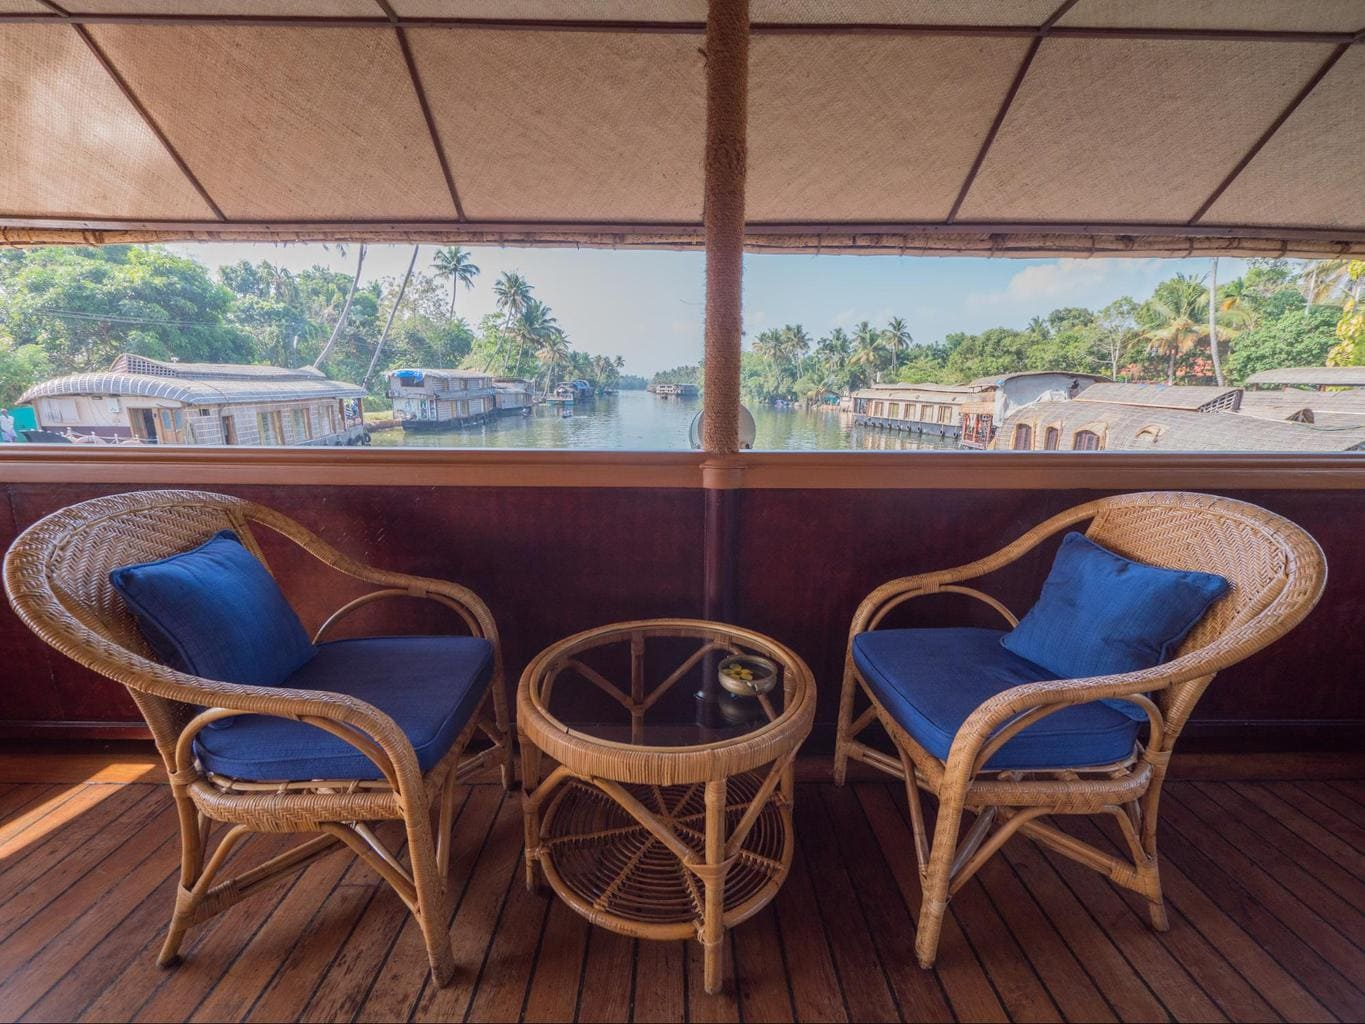 View from inside the The Oberoi Motor Vessel Vrinda